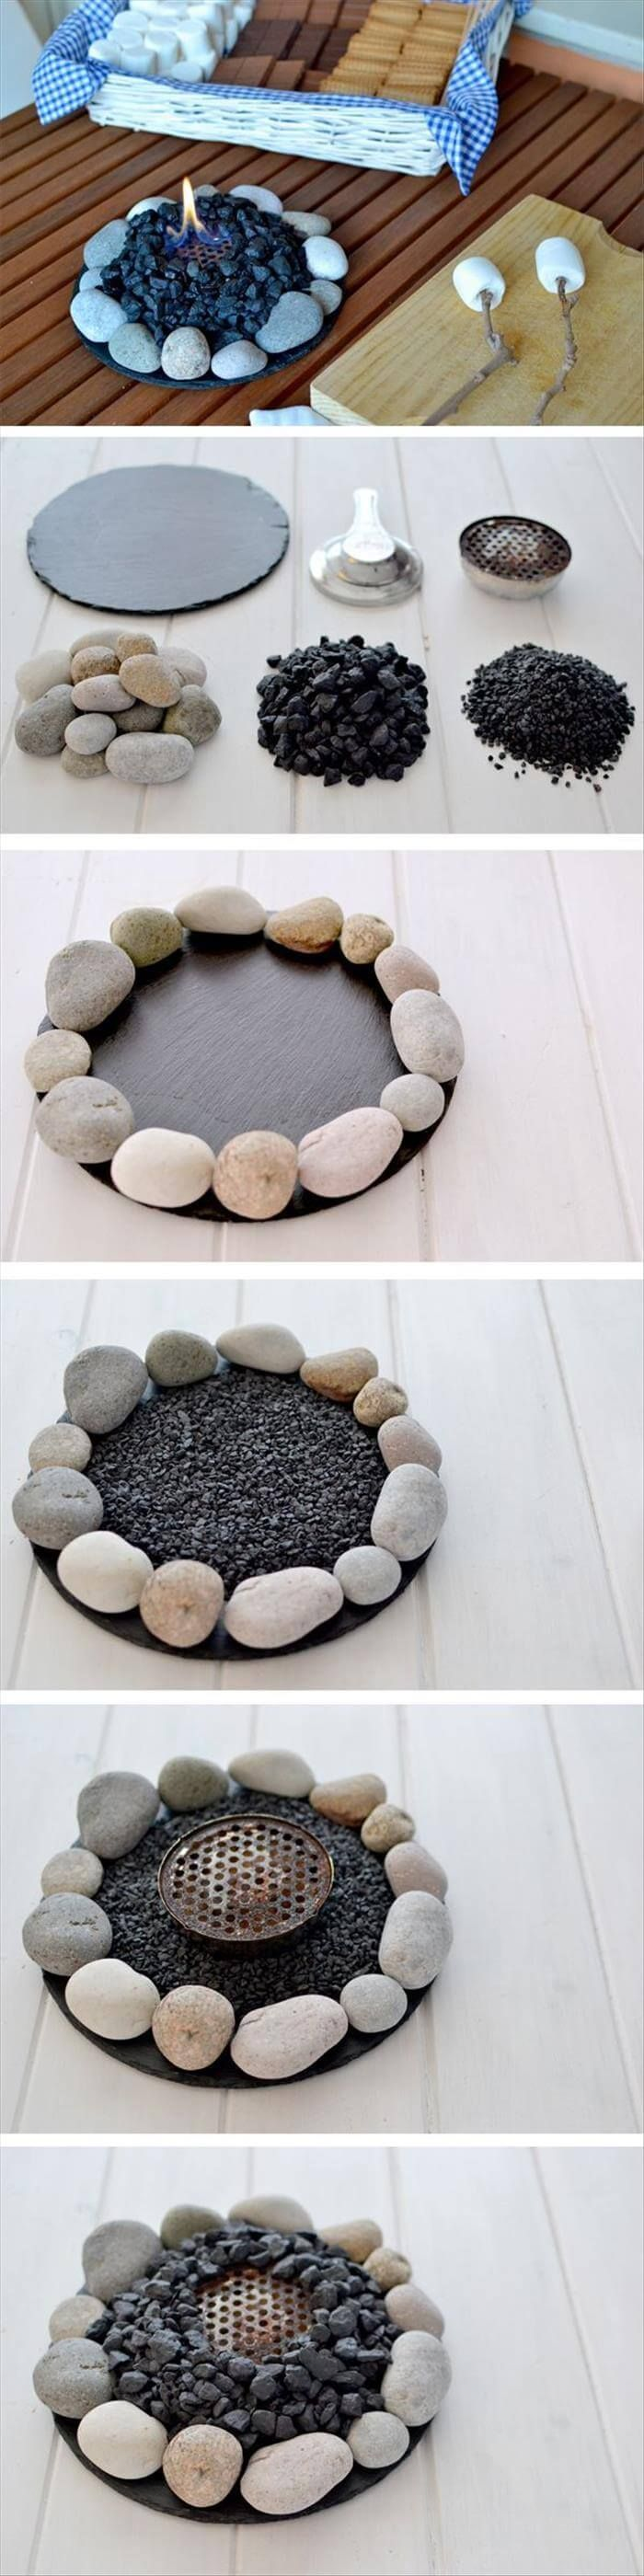 Small Round Fire Bowl for a Table